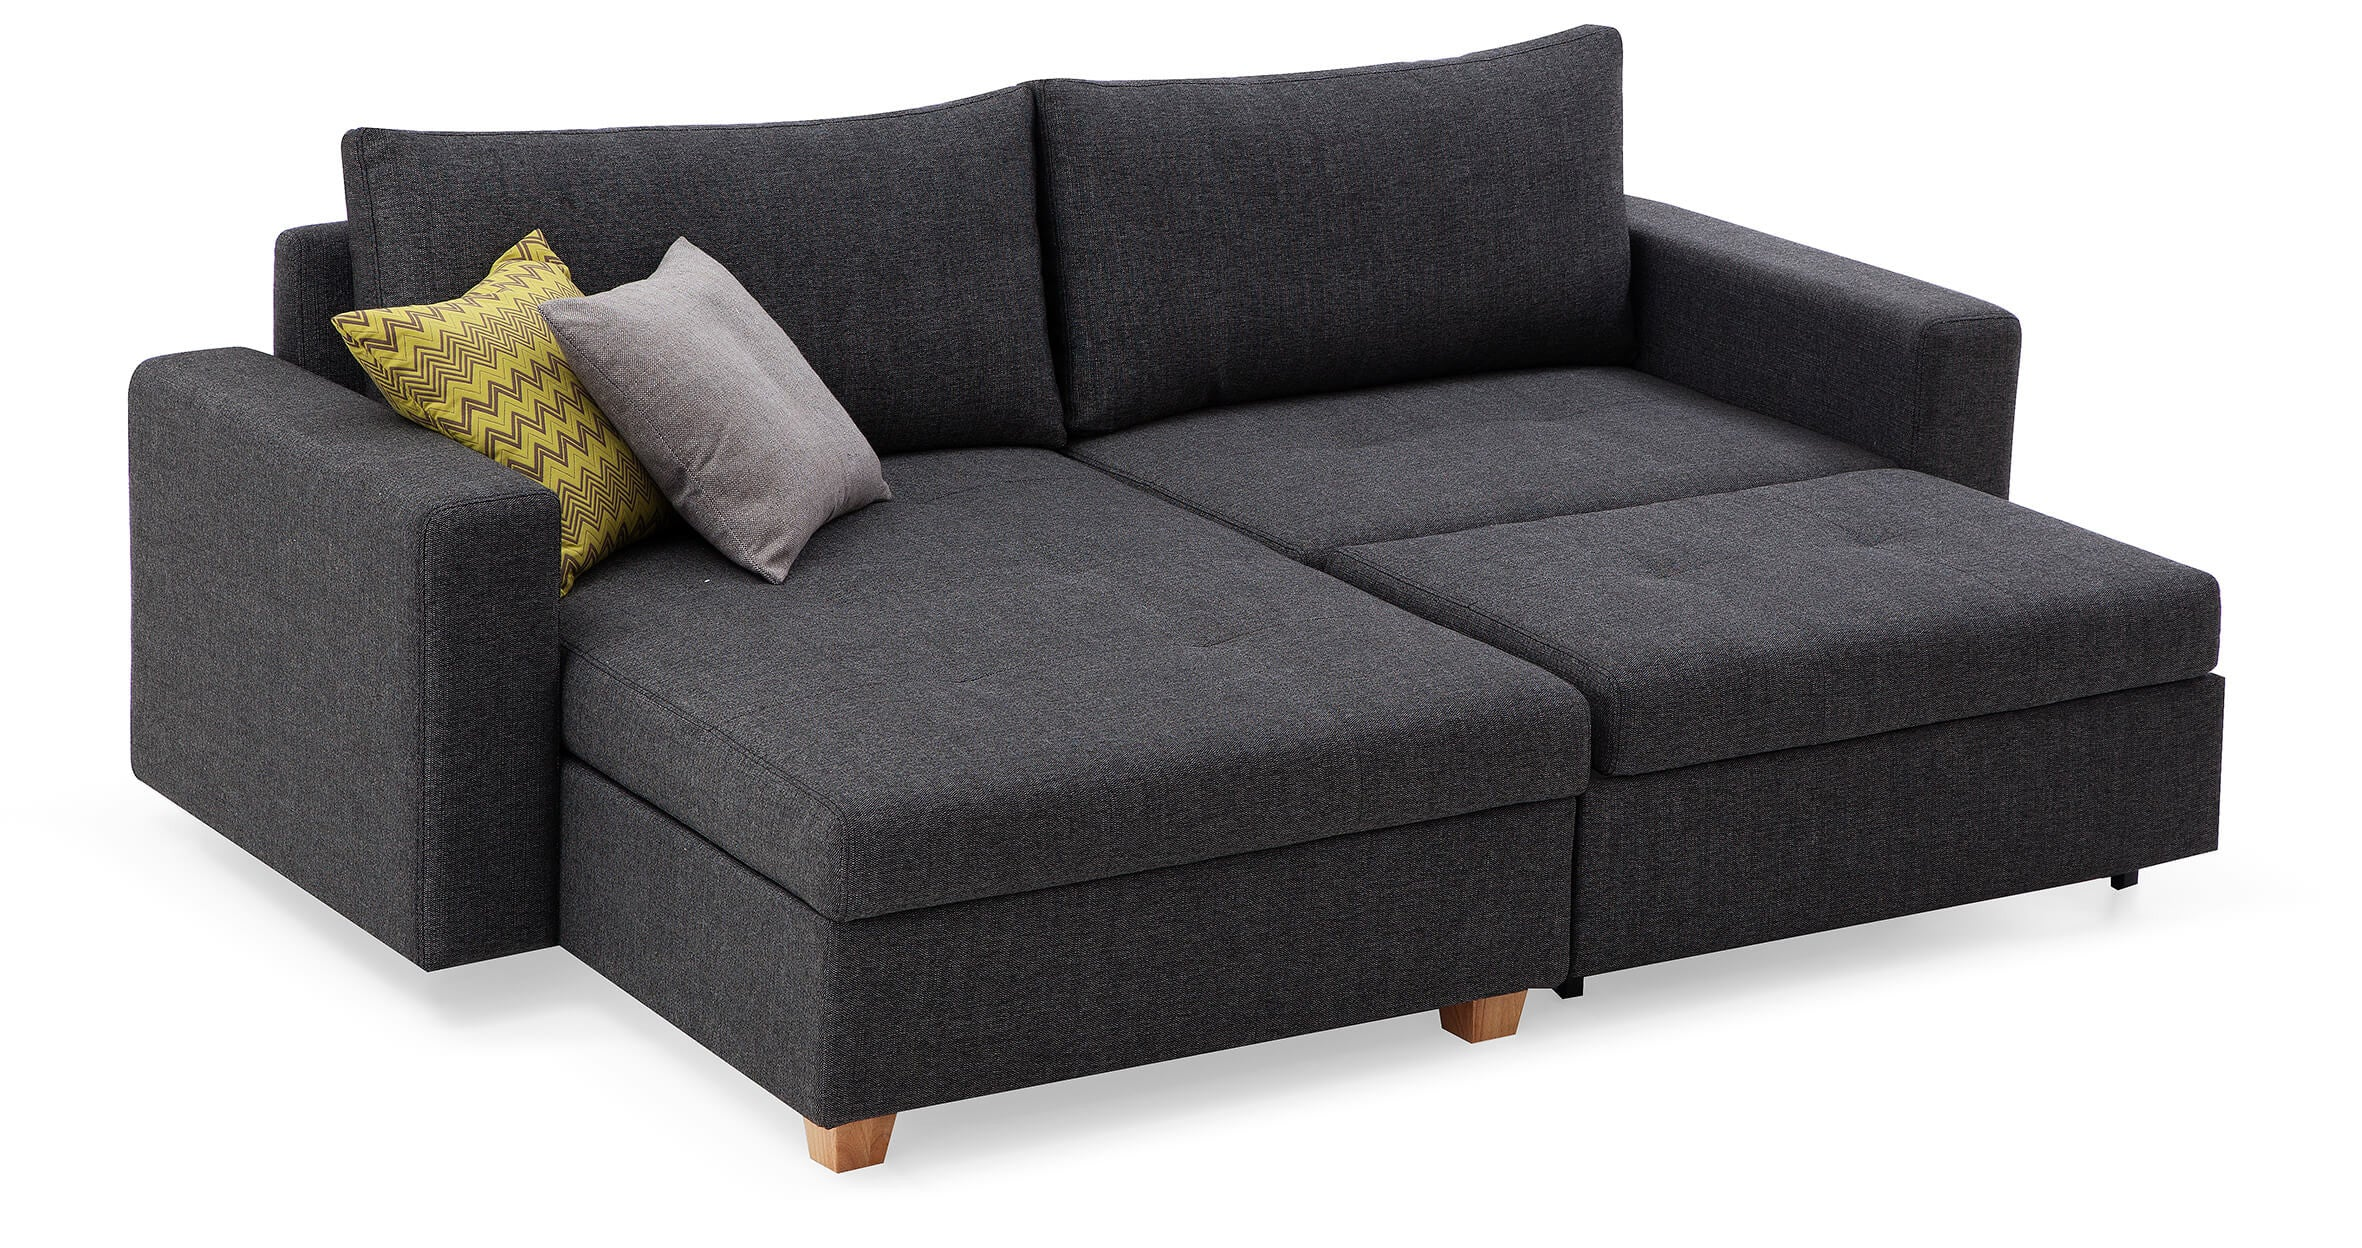 Pull-Out Sofa Beds - More-Than-Just-A-Sofa